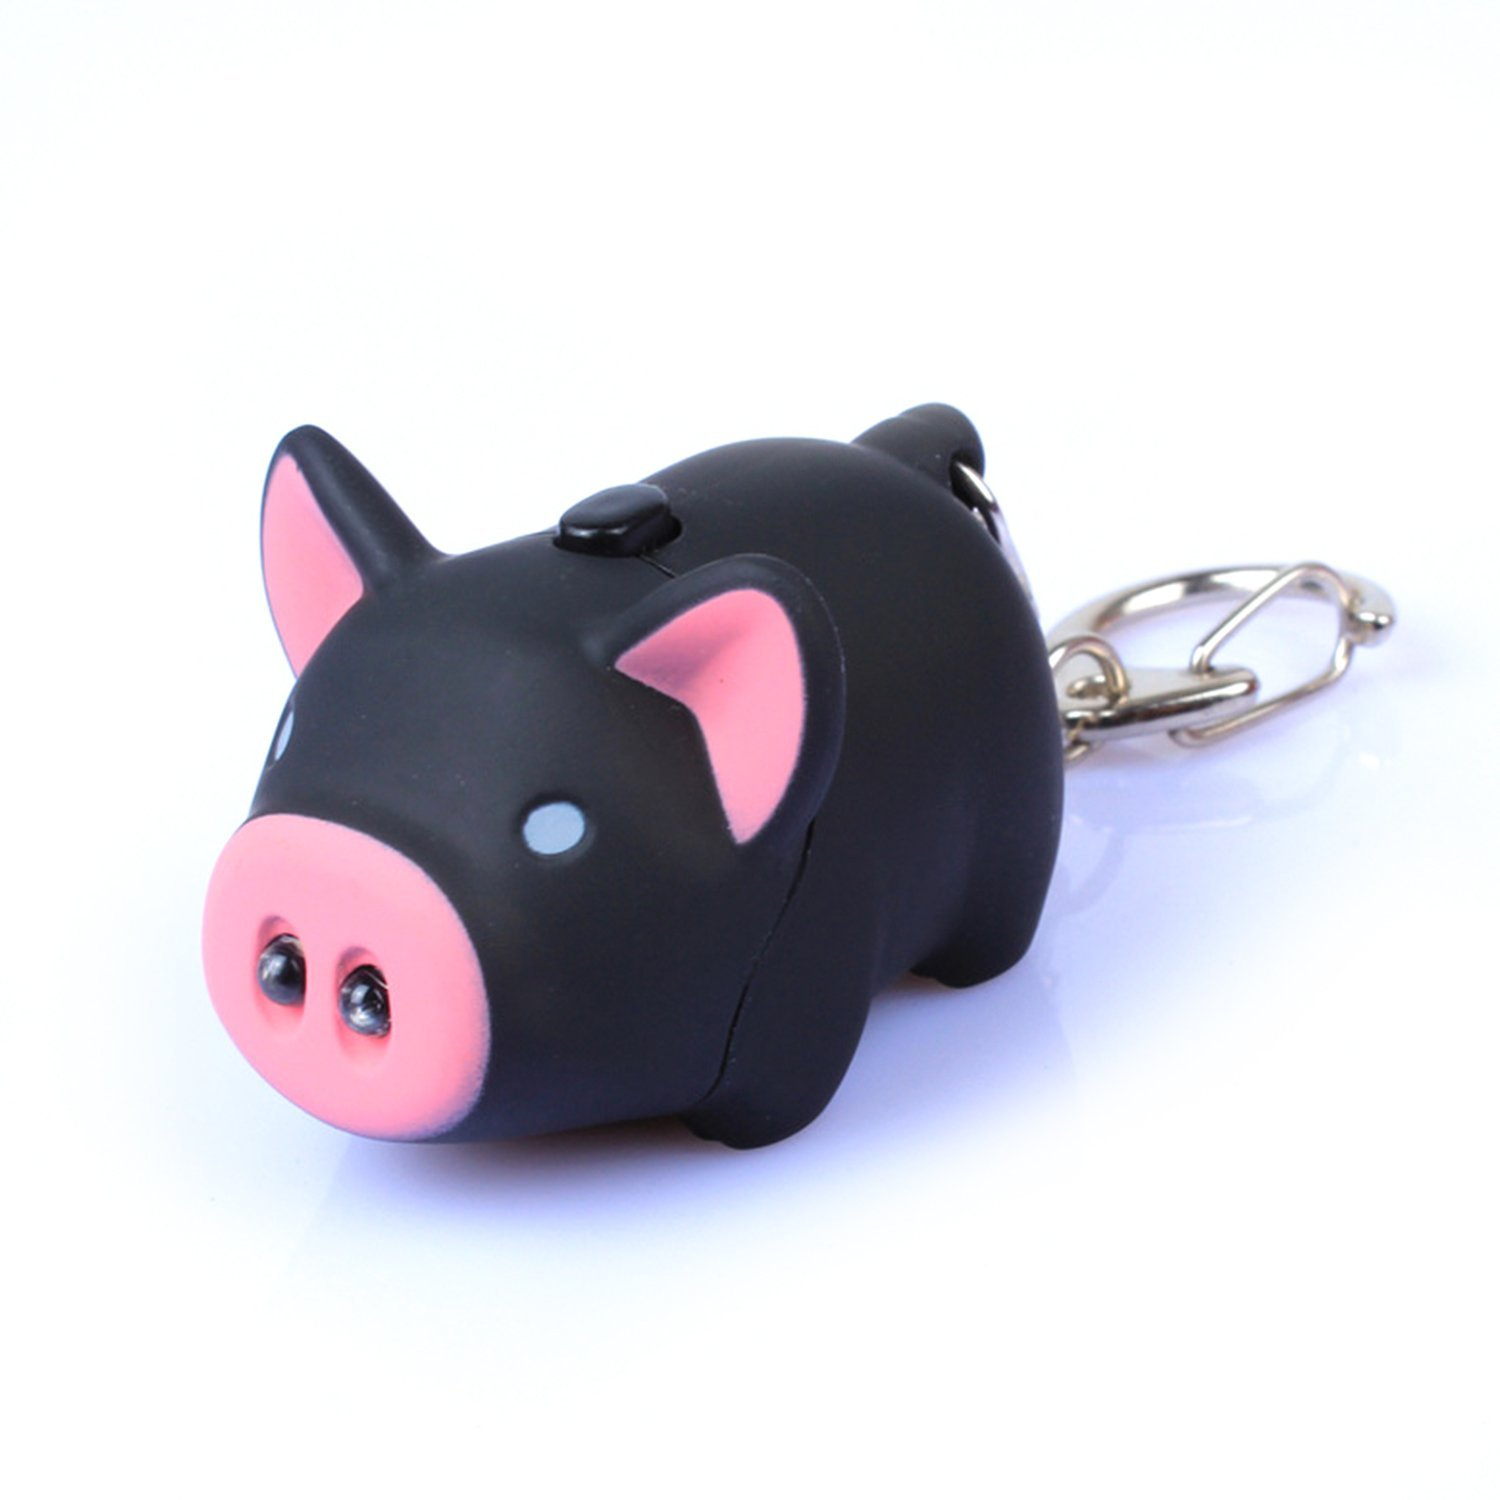 3 Pack PBY Oink Piggy Animal Design Keychain with LED Light and Sound